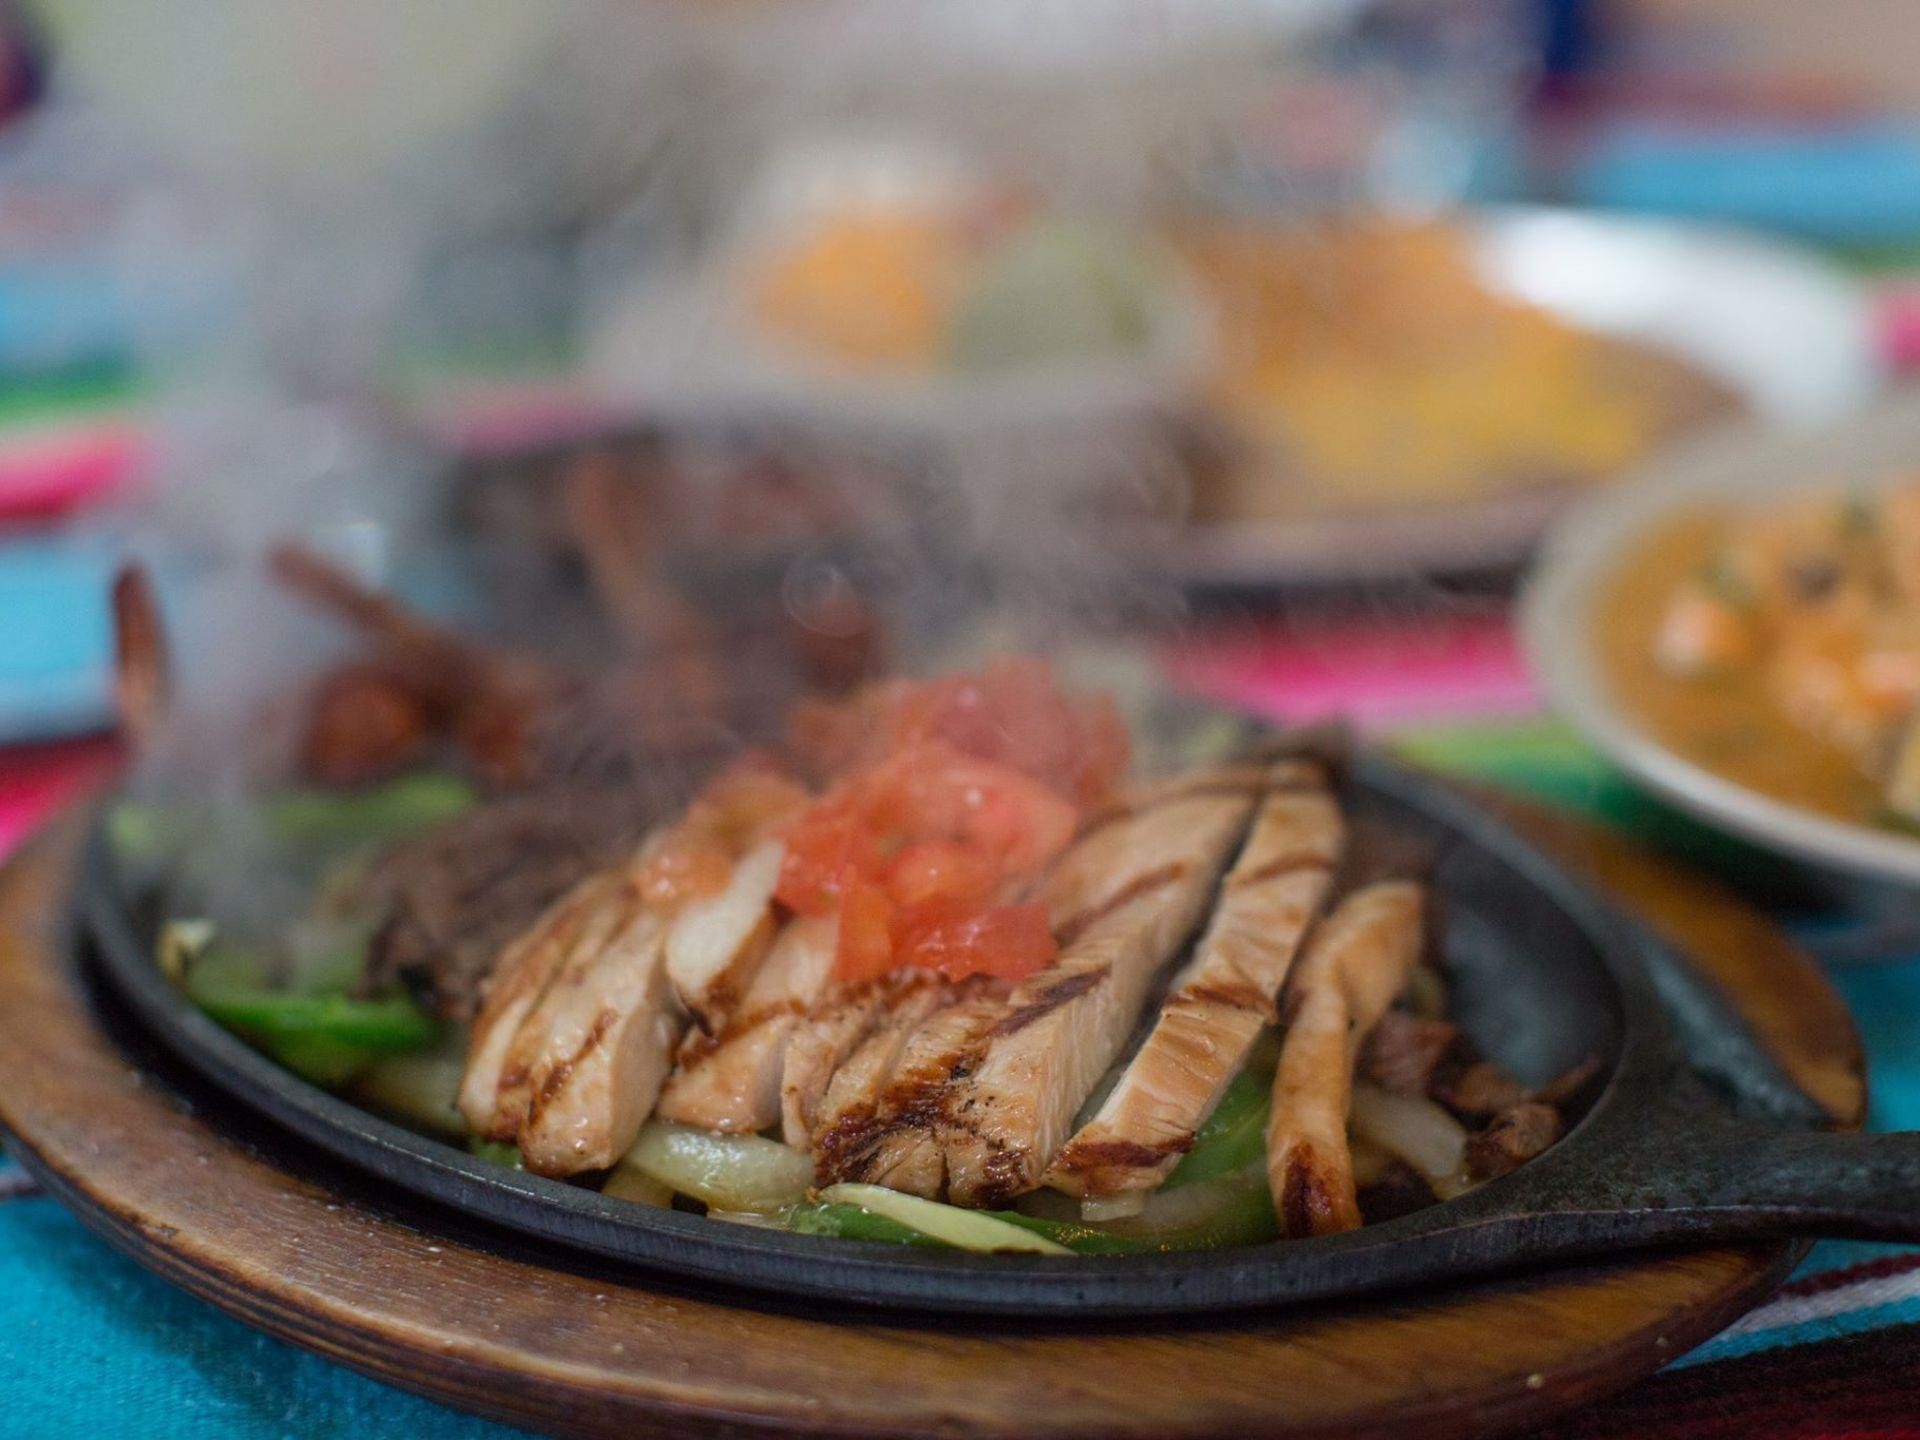 Chicken fajita in a skillet with vegetables